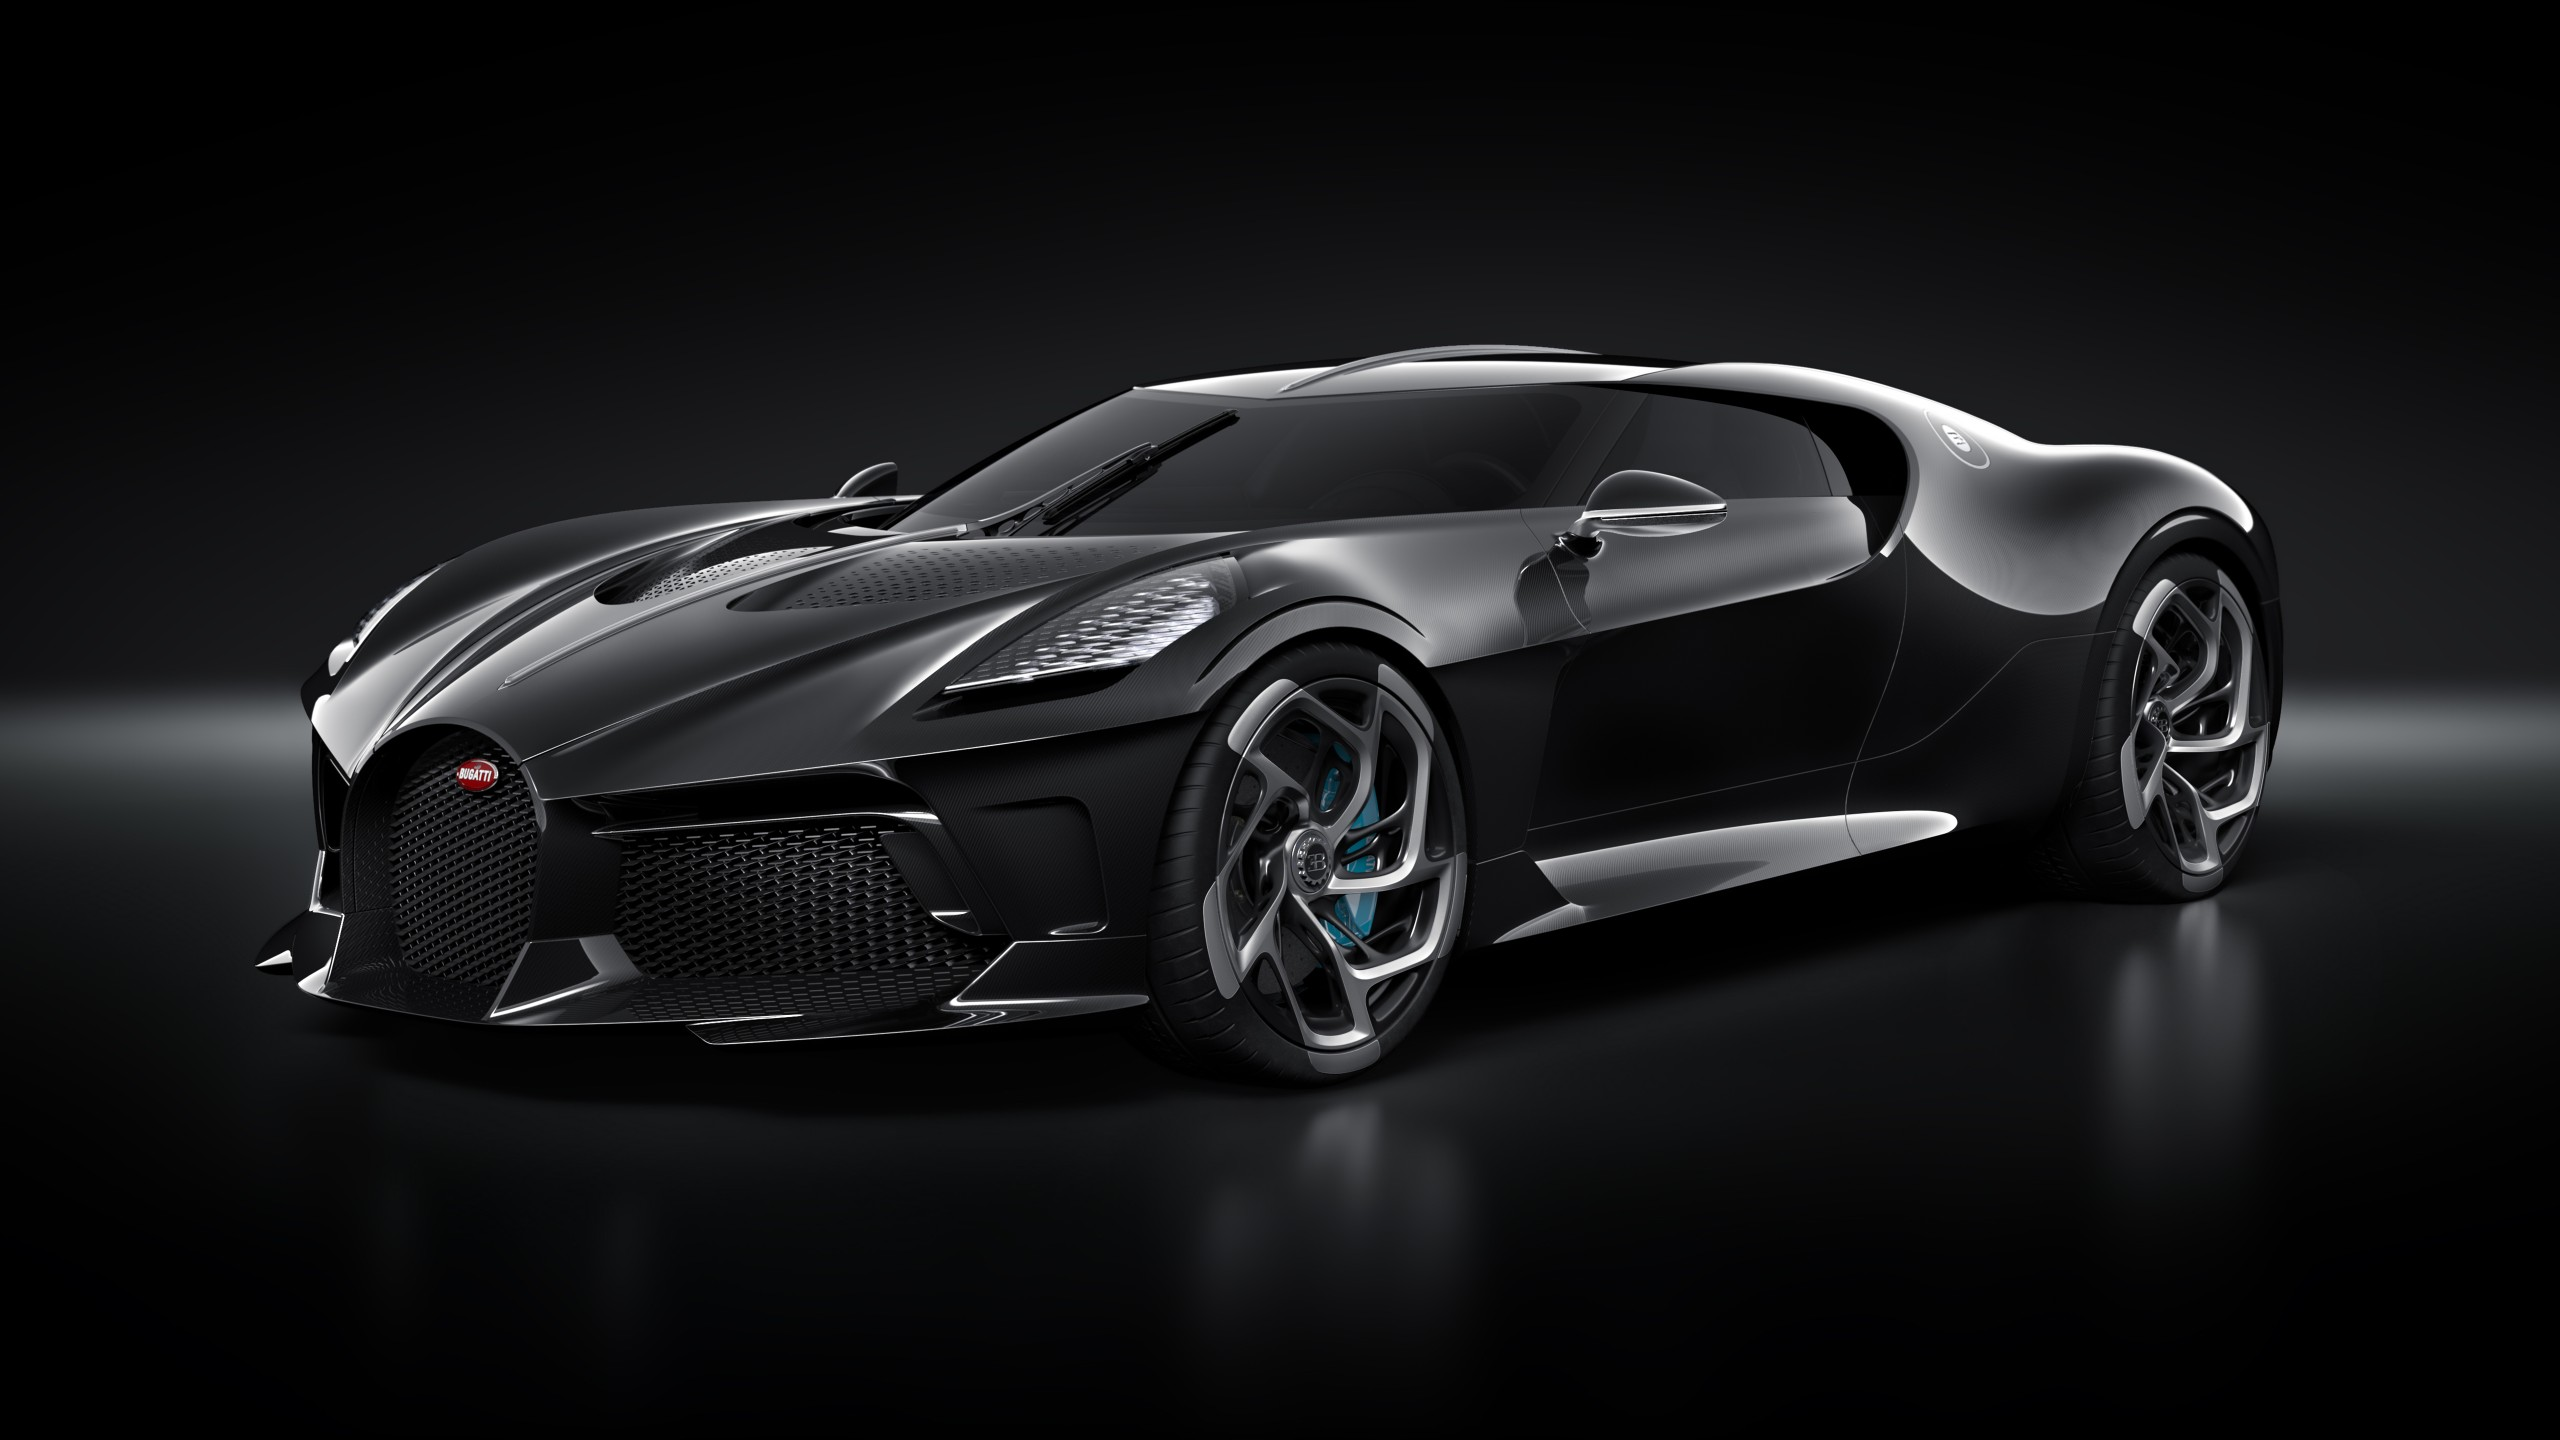 Cadillac Cars Hd Wallpapers Bugatti La Voiture Noire 2019 4k Wallpaper Hd Car